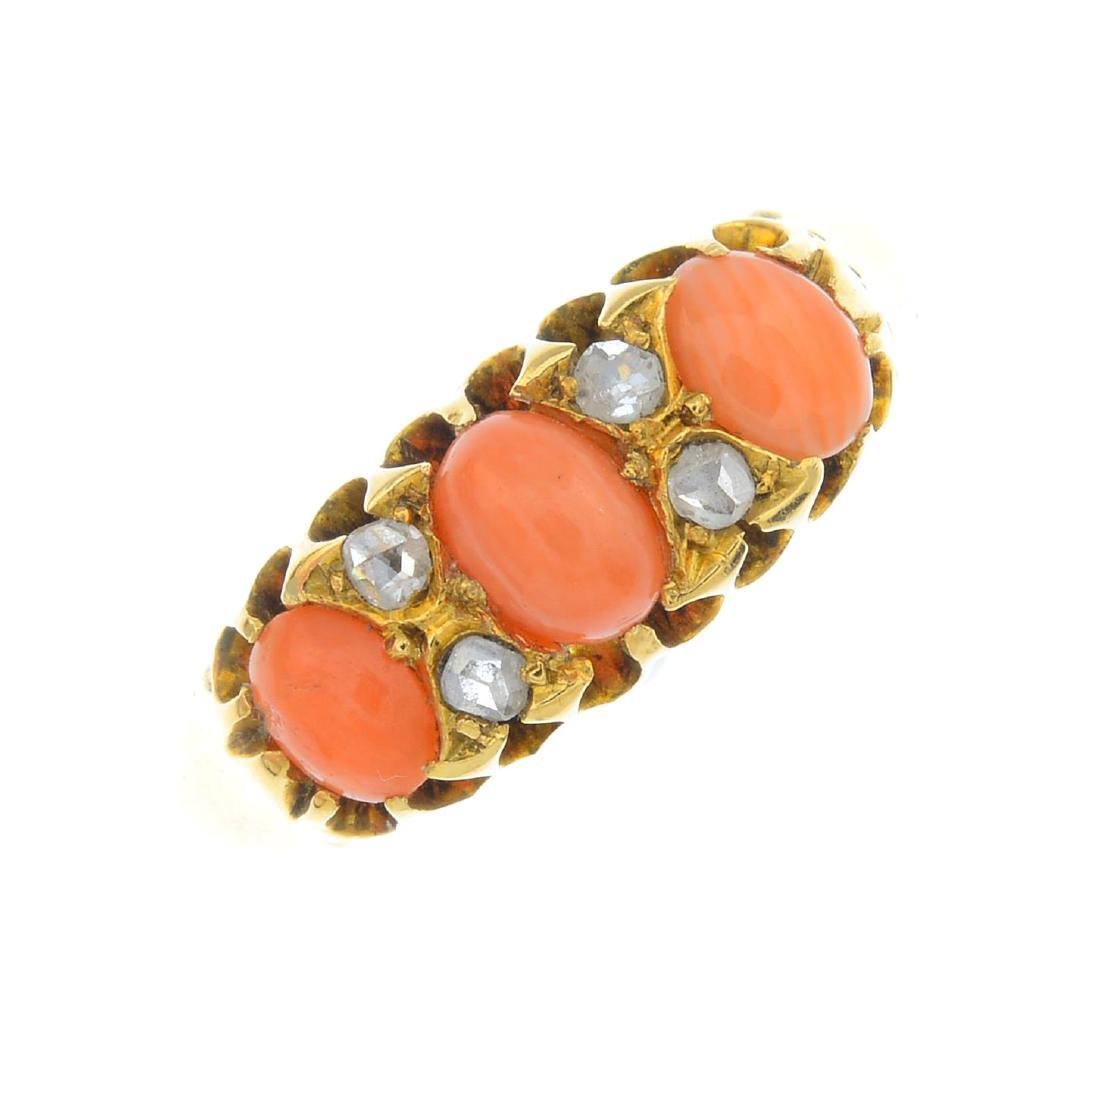 A late Victorian 18ct gold coral and diamond ring. The